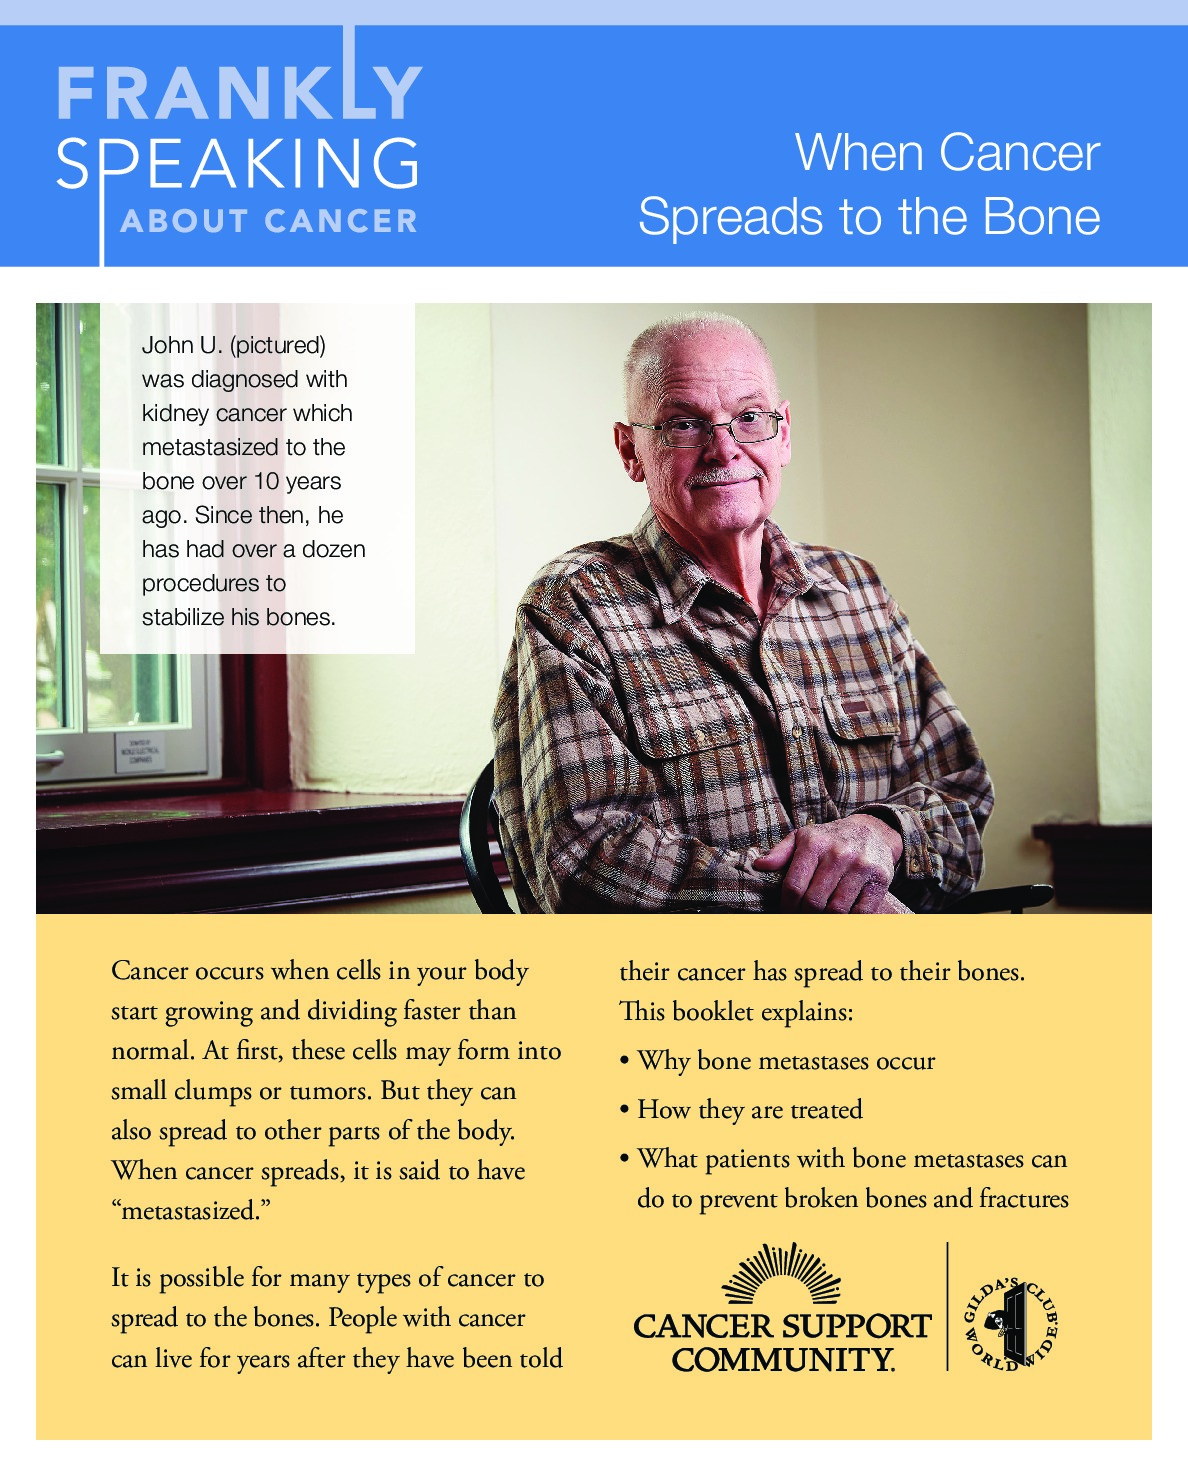 Frankly Speaking About Cancer: When Cancer Spreads to the Bone